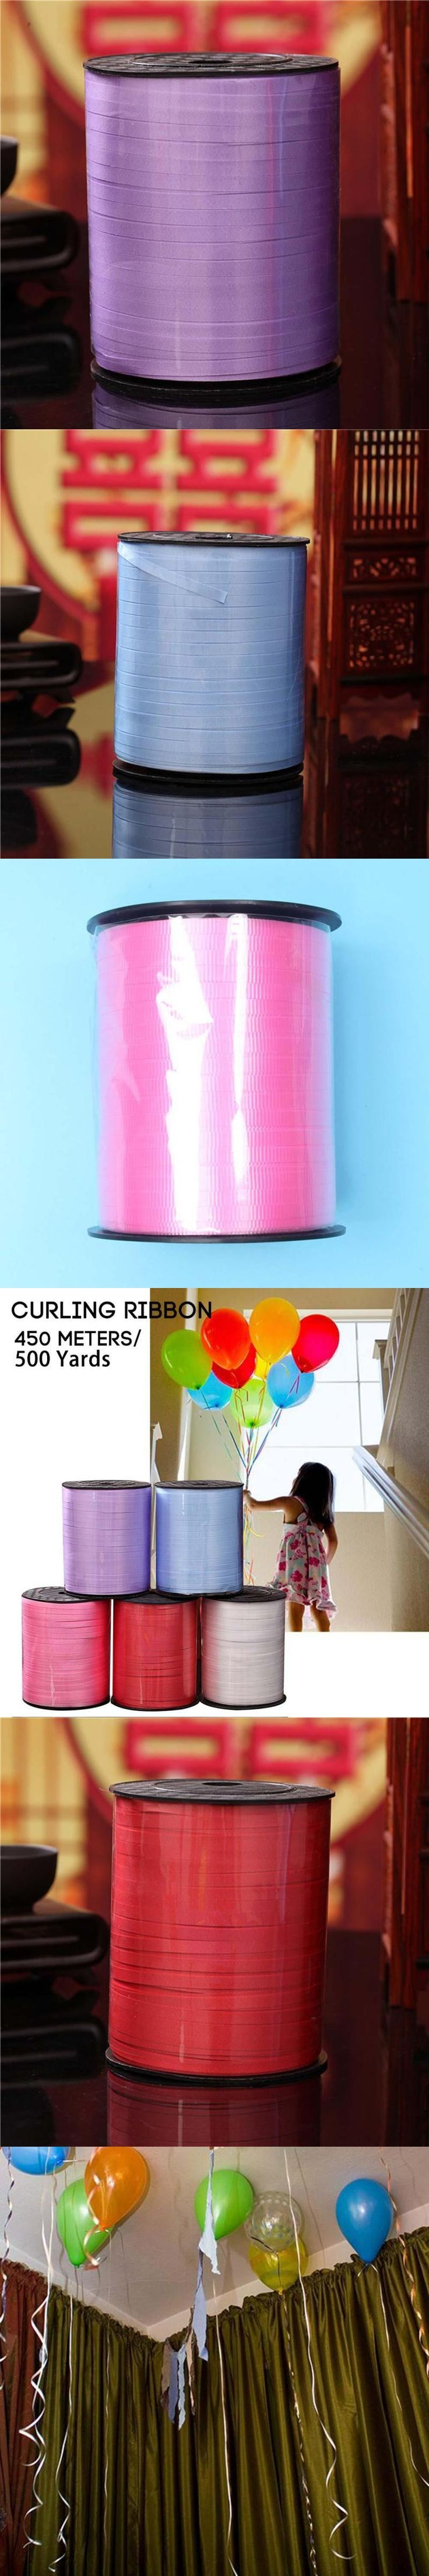 1Roll 500Yards Balloon Ribbon Roll Diy Roll Crafts Foil Curling Wedding Birthday Party Gift/Flower Bouquet/Cards Decorations #0